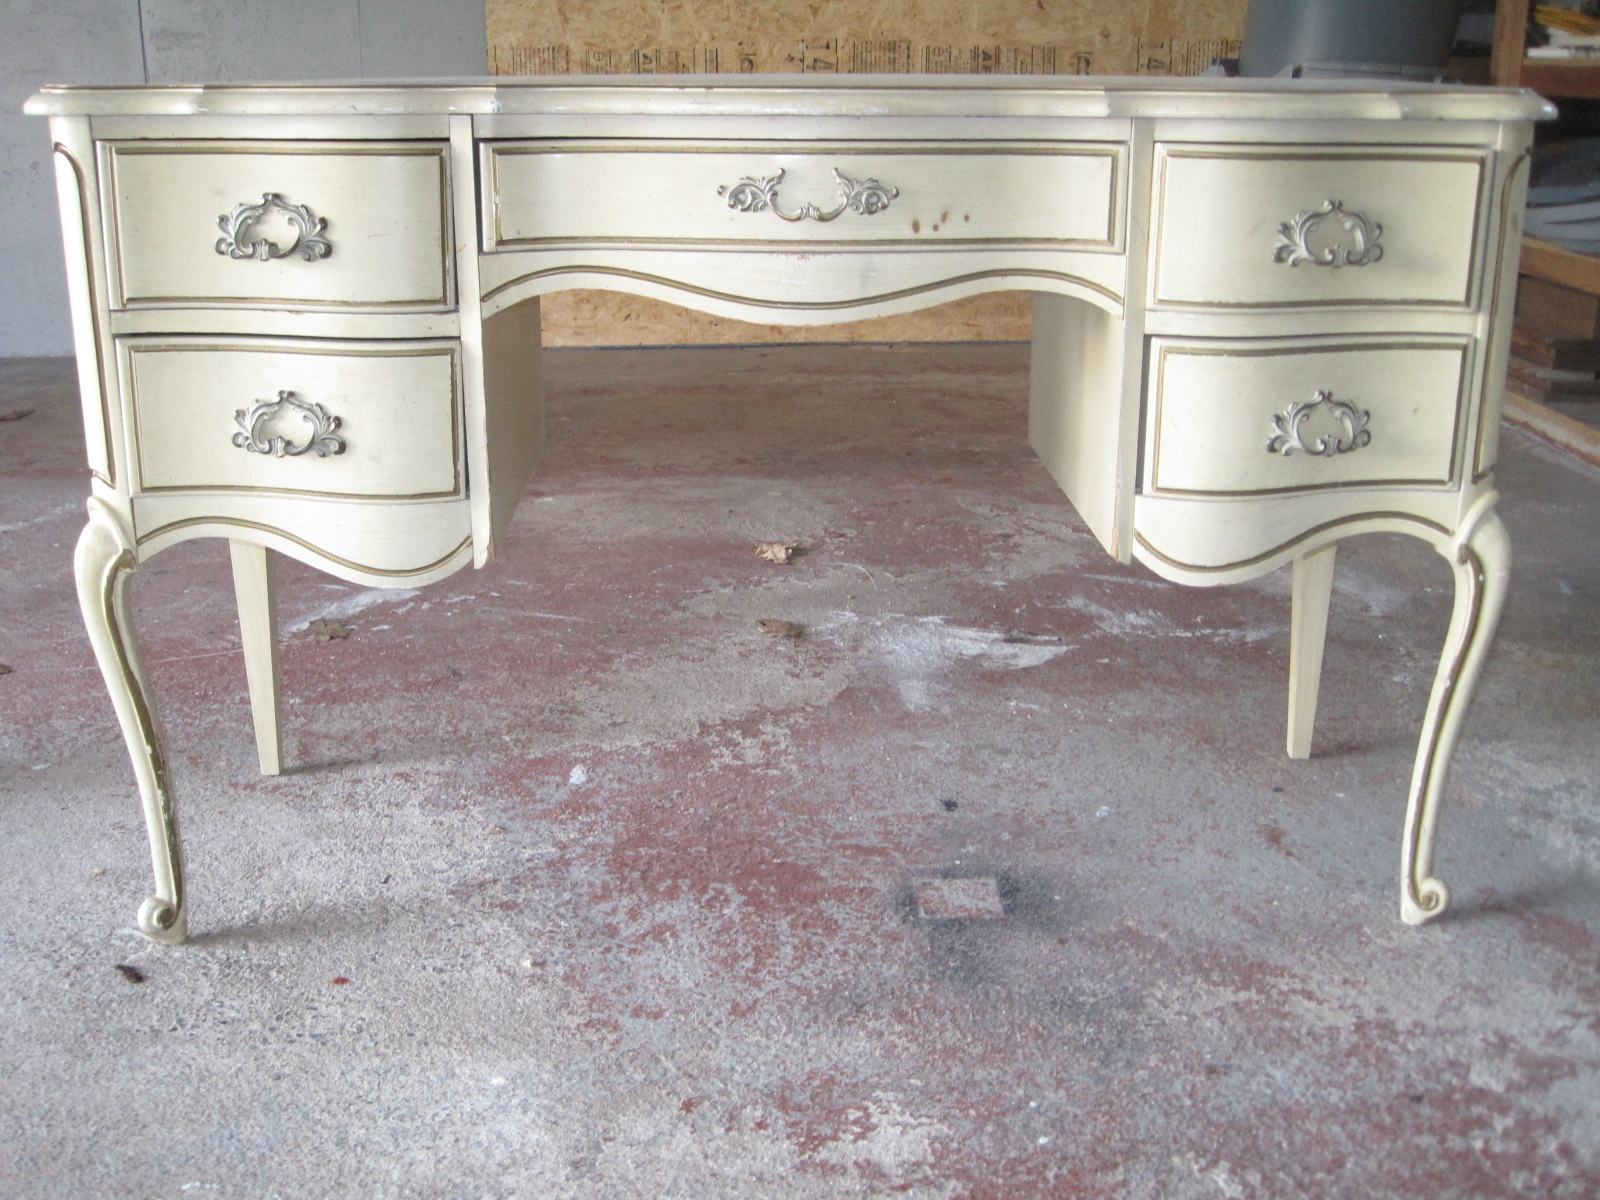 How To Spray Paint Wooden Furniture -